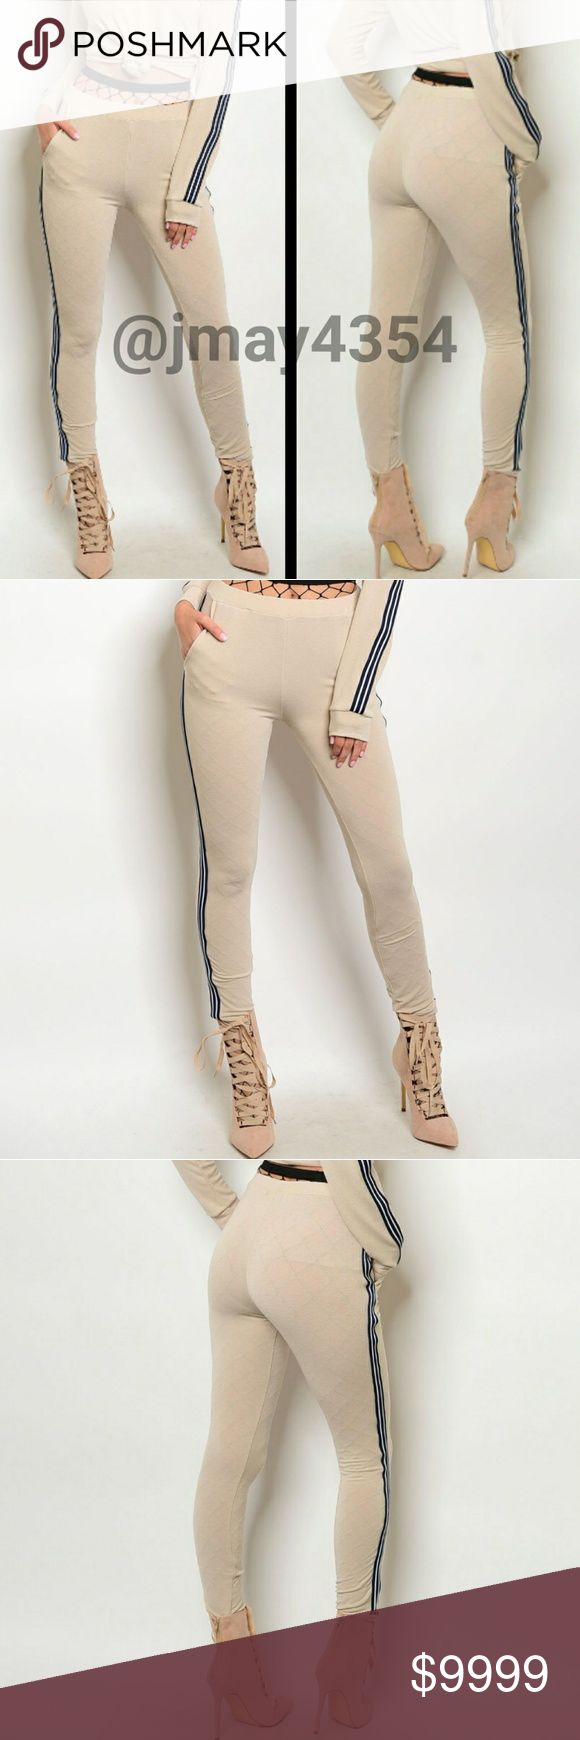 COMING SOON LOVE this! Tan with navy side lines skinny track pants. Matching sweater will also be available for sale. More details to come!  SIZE AVAILABLE: S M L MODELING SIZE:  I.G: @JMAYORGA91   LIKE TO BE NOTIFIED OR COMMENT BELOW Pants Track Pants & Joggers